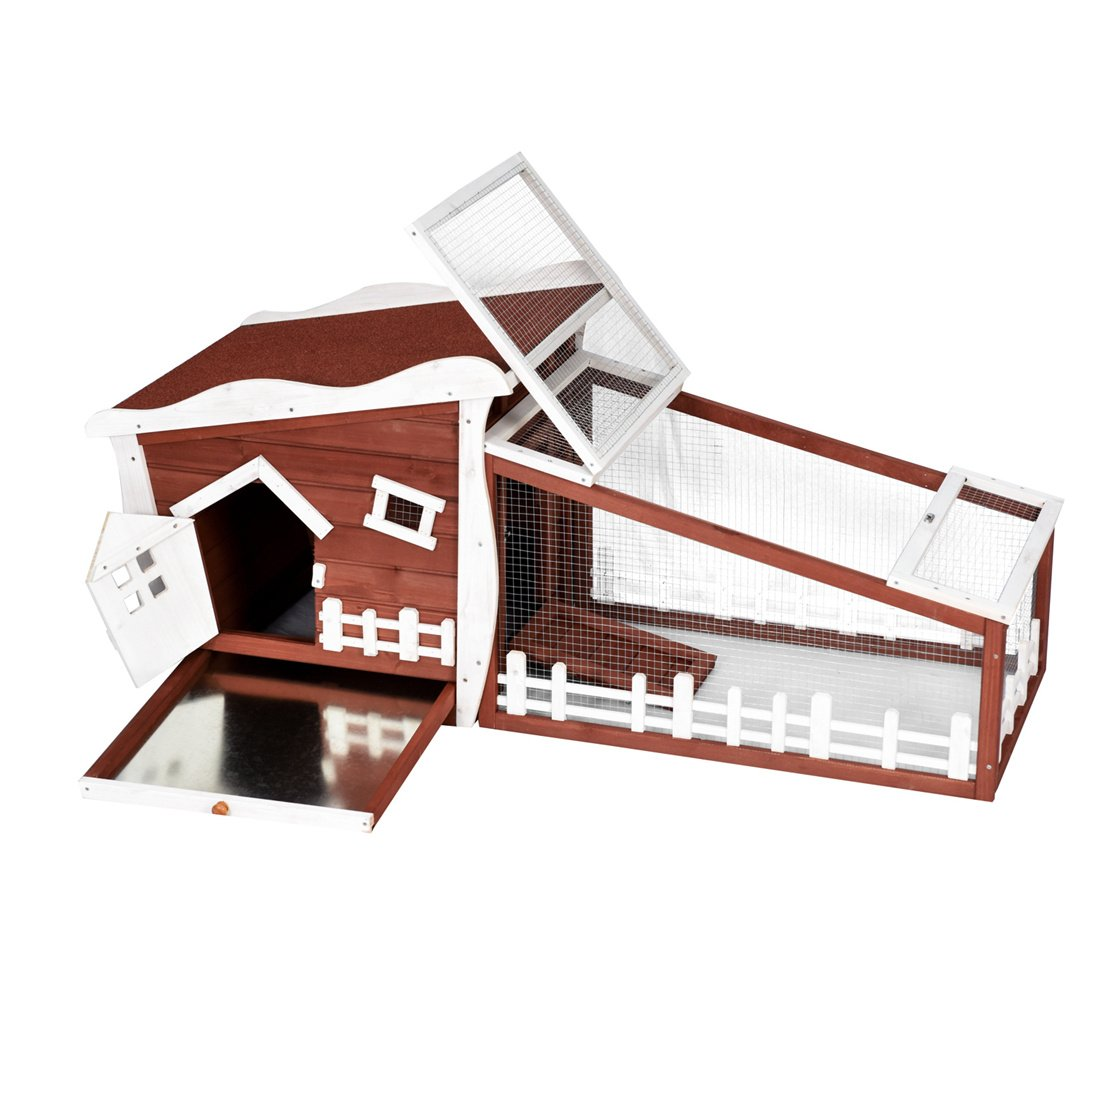 Good Life Wooden Easy Clean Rabbit Guinea Pig Cage Bunny Hutch - Outdoor Cute Fairytale Cartoon Style Pet House Coop by GOOD LIFE USA (Image #5)